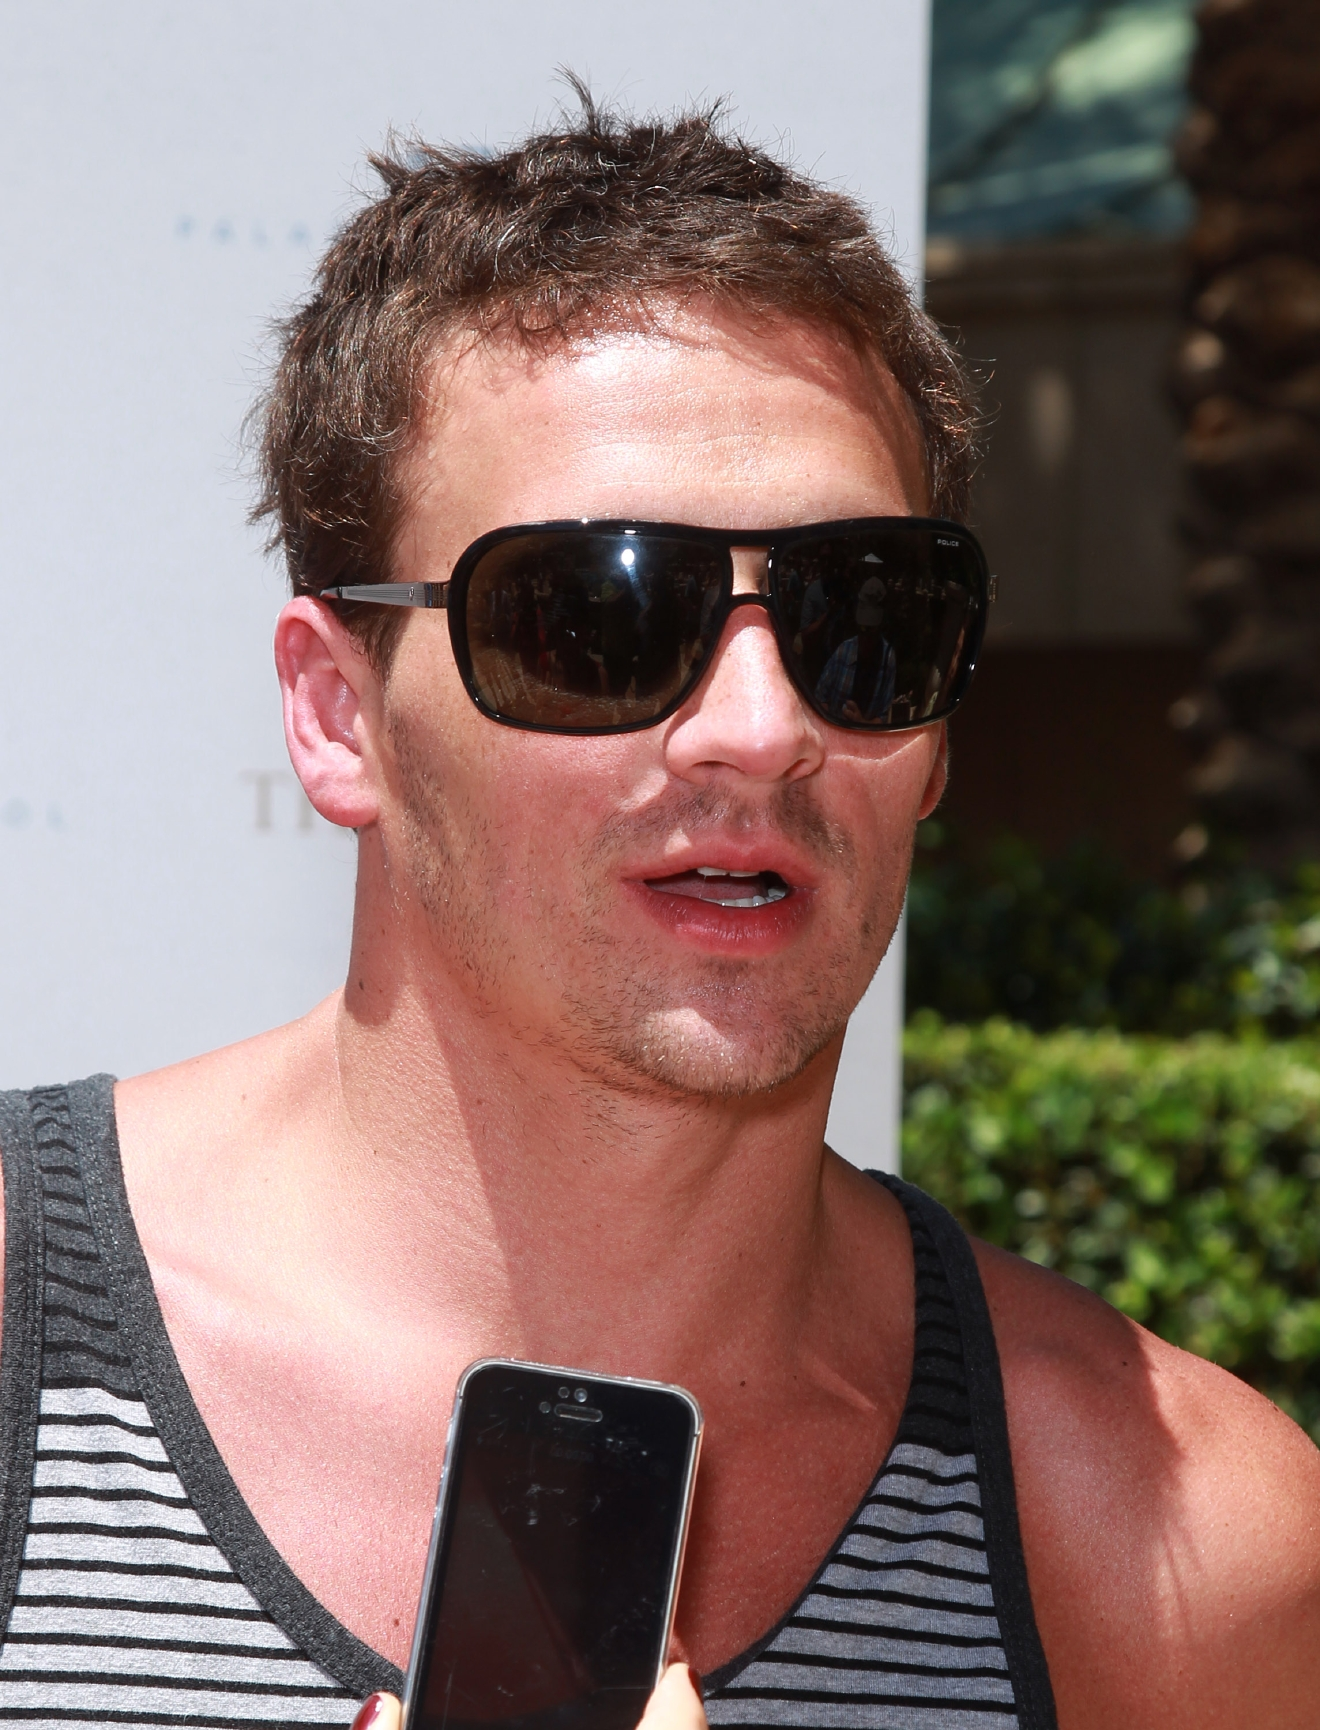 Olympic medalist Ryan Lochte at Azure Luxury Pool at The Palazzo Las Vegas  Featuring: Ryan Lochte Where: Las Vegas, Nevada, United States When: 07 Jun 2014 Credit: Judy Eddy/WENN.com